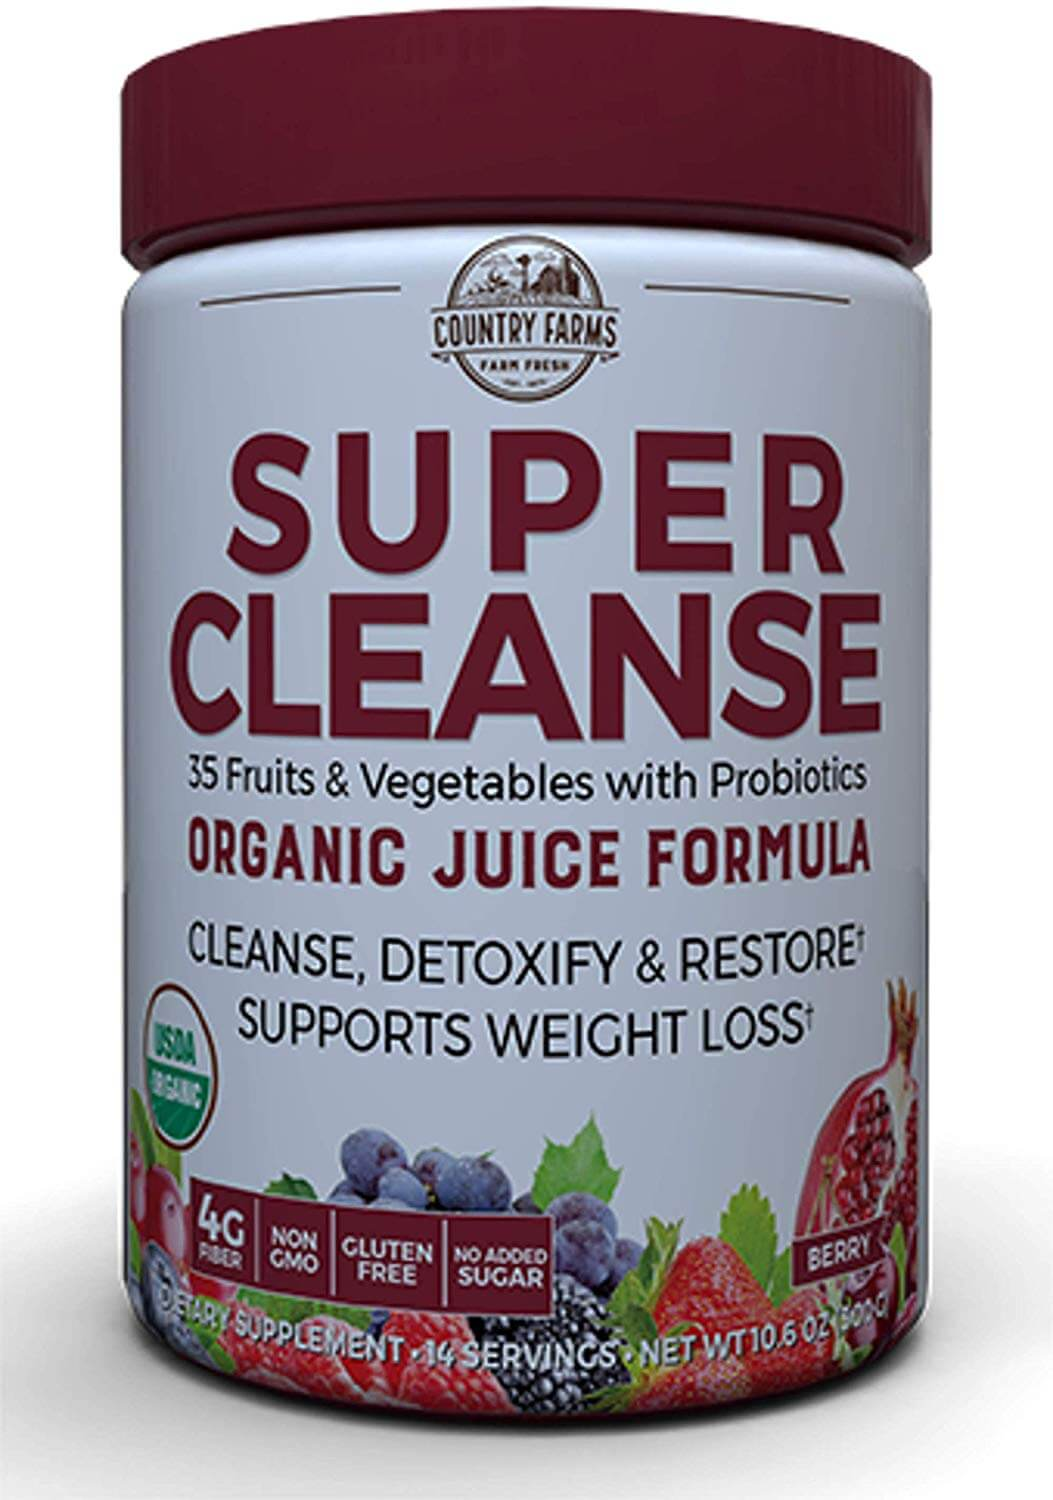 Country Farms Super Cleanse